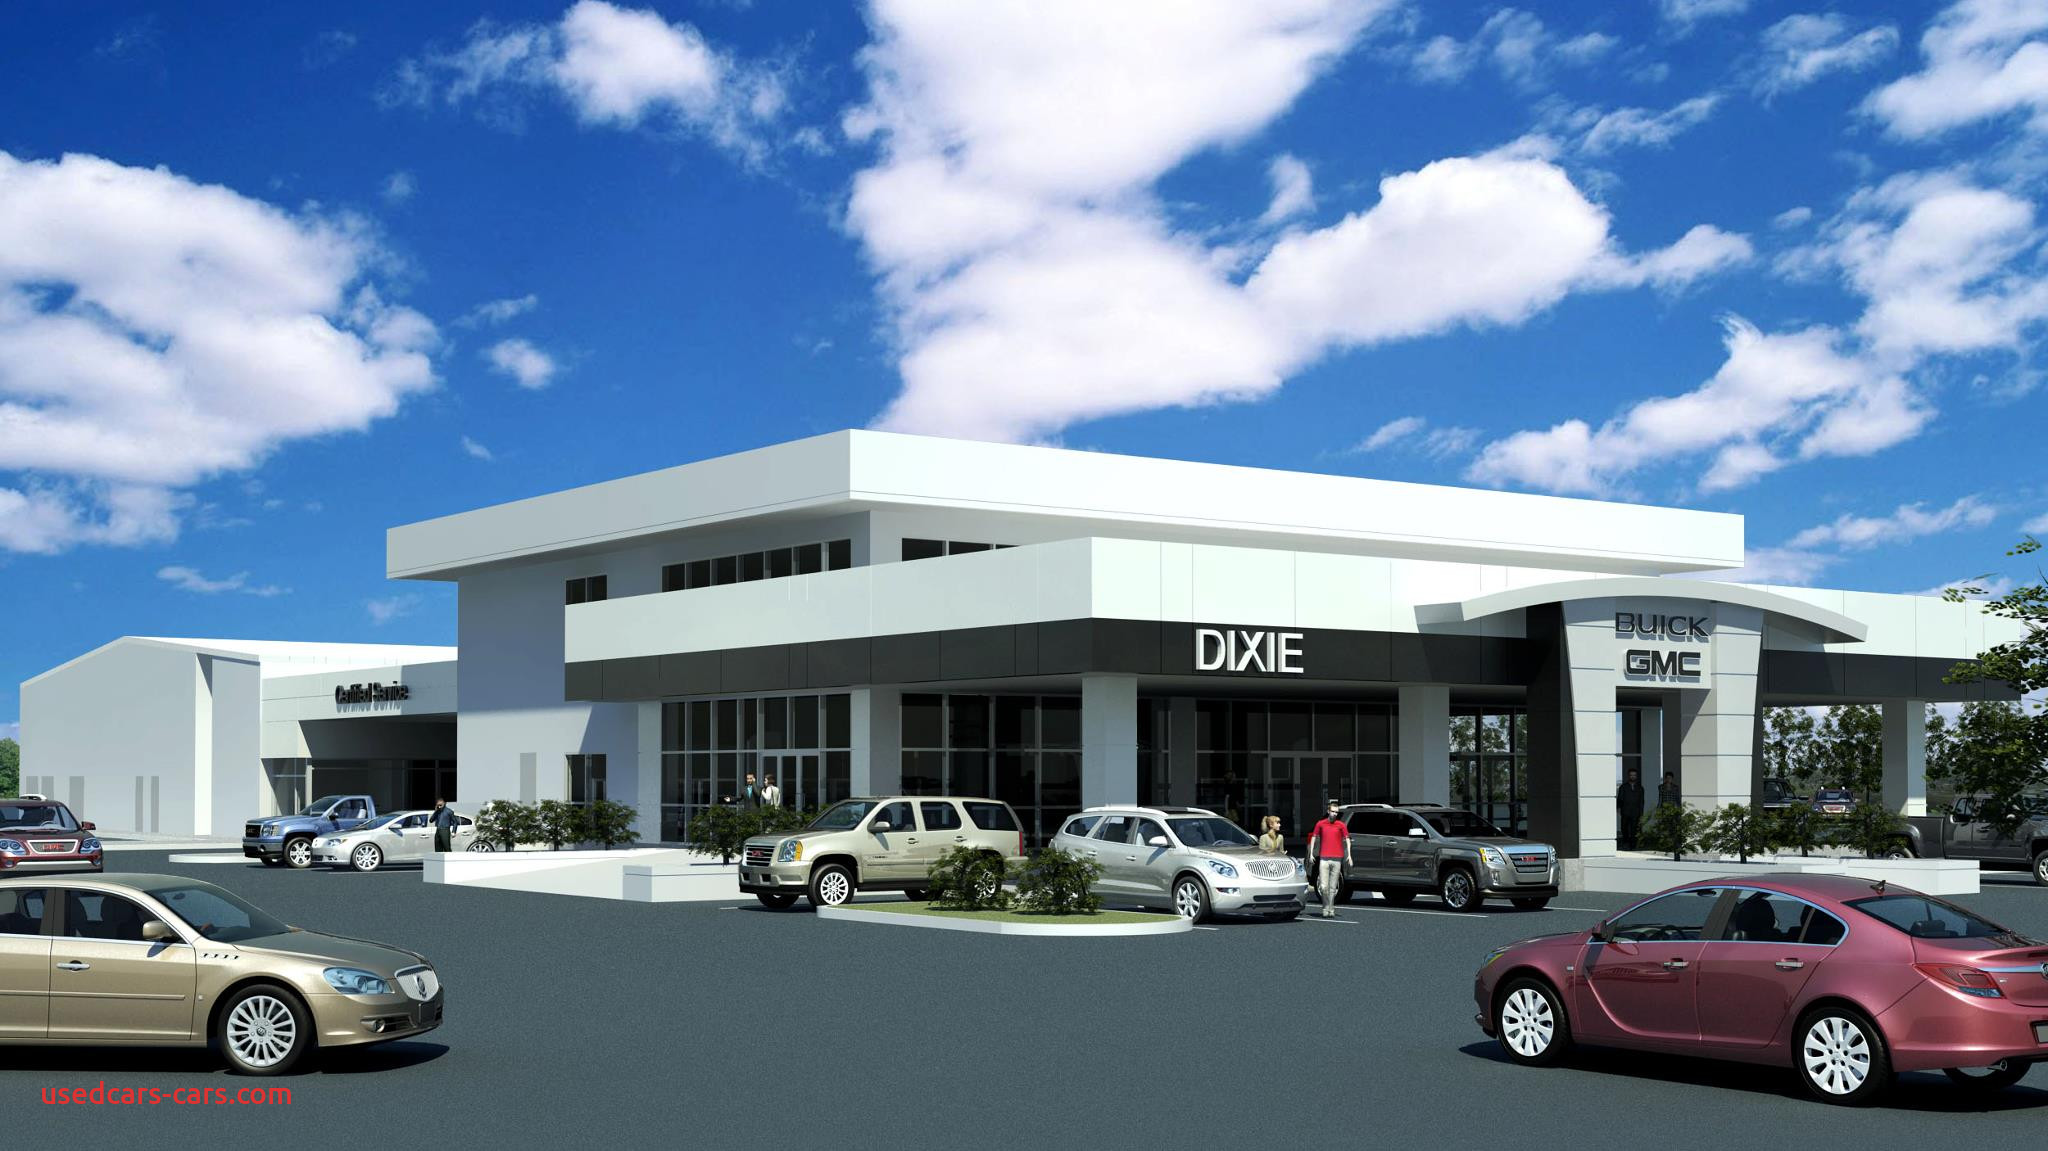 Dealership Beautiful 5 Qualities to Look for In A Car Dealership Dixie Buick Gmc